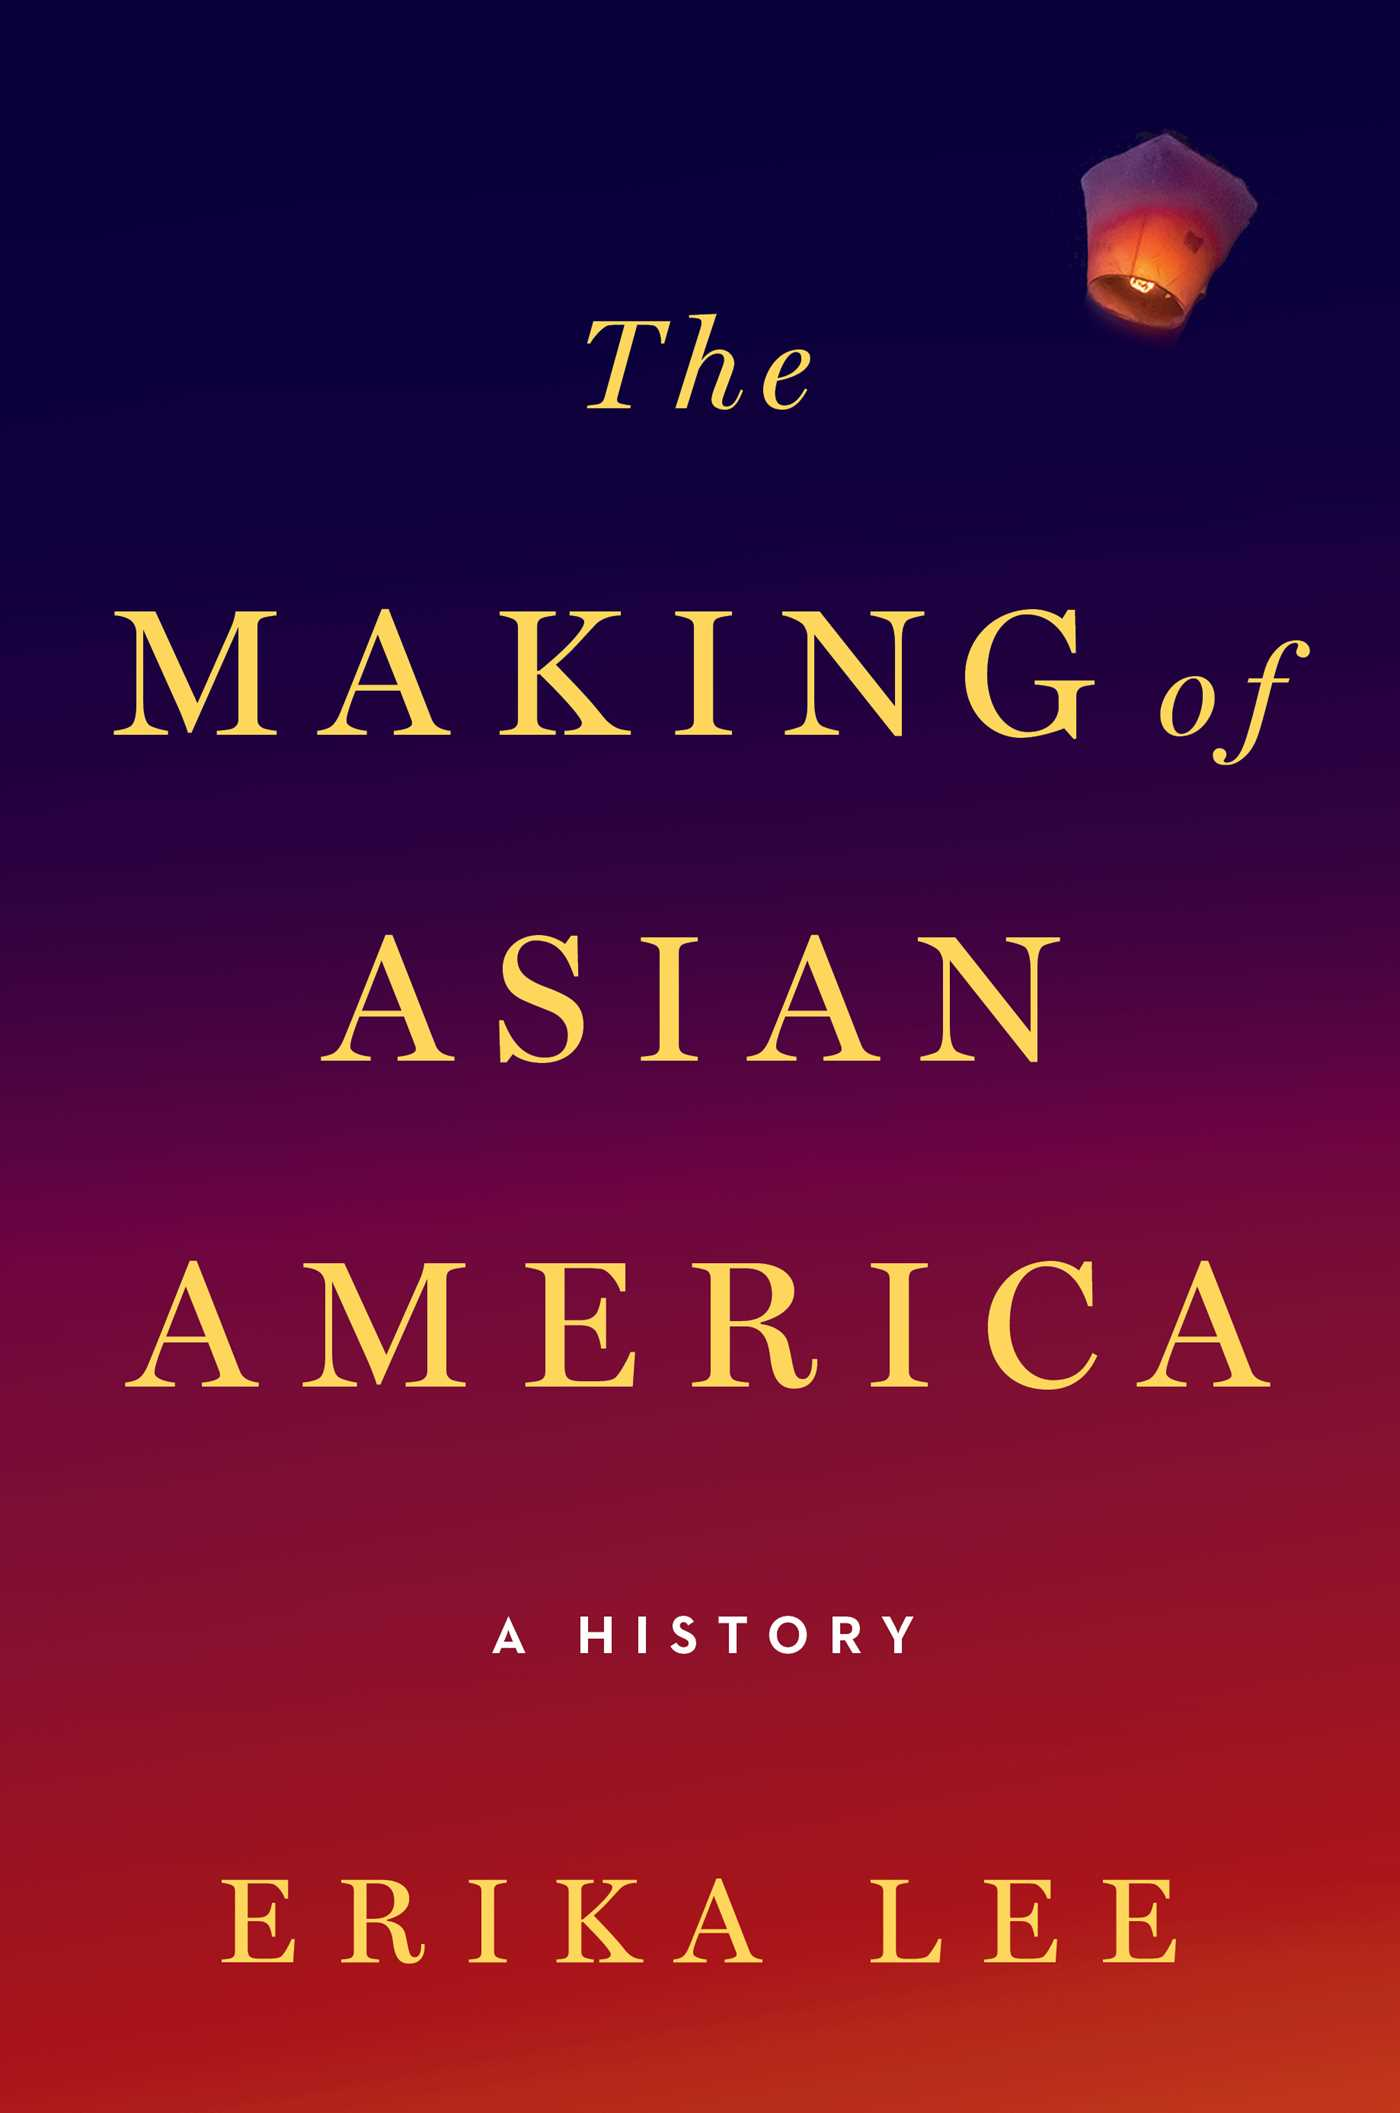 The-making-of-asian-america-9781476739403_hr